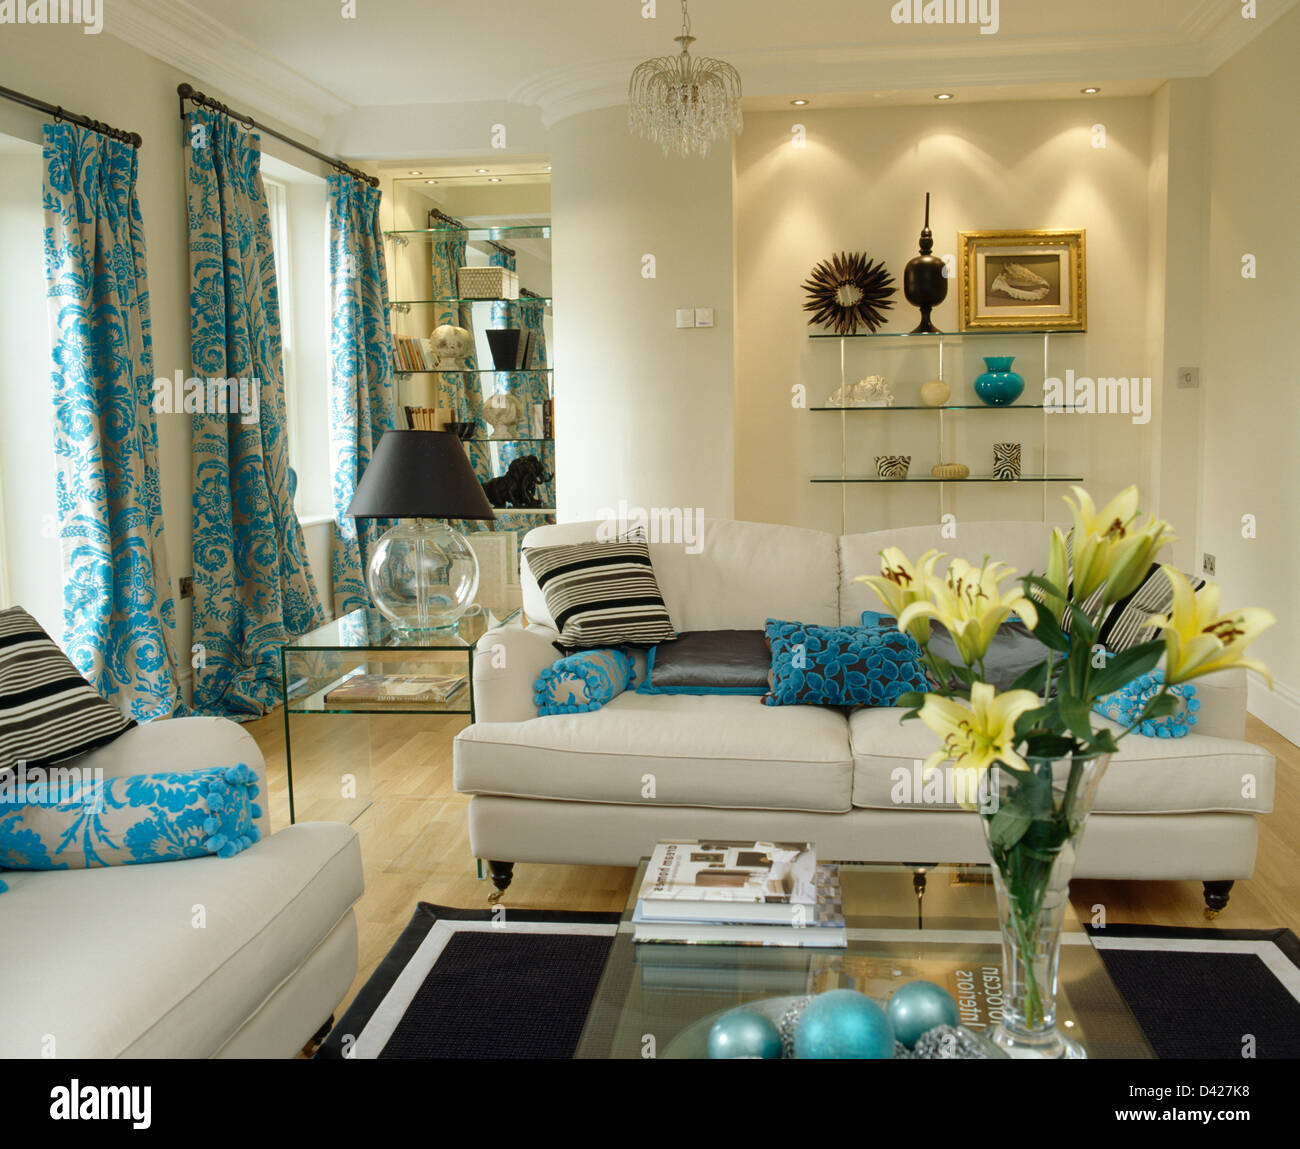 Recessed Lighting Above Alcove Shelving In Cream Living Room With Turquoise  Cushions On White Sofas